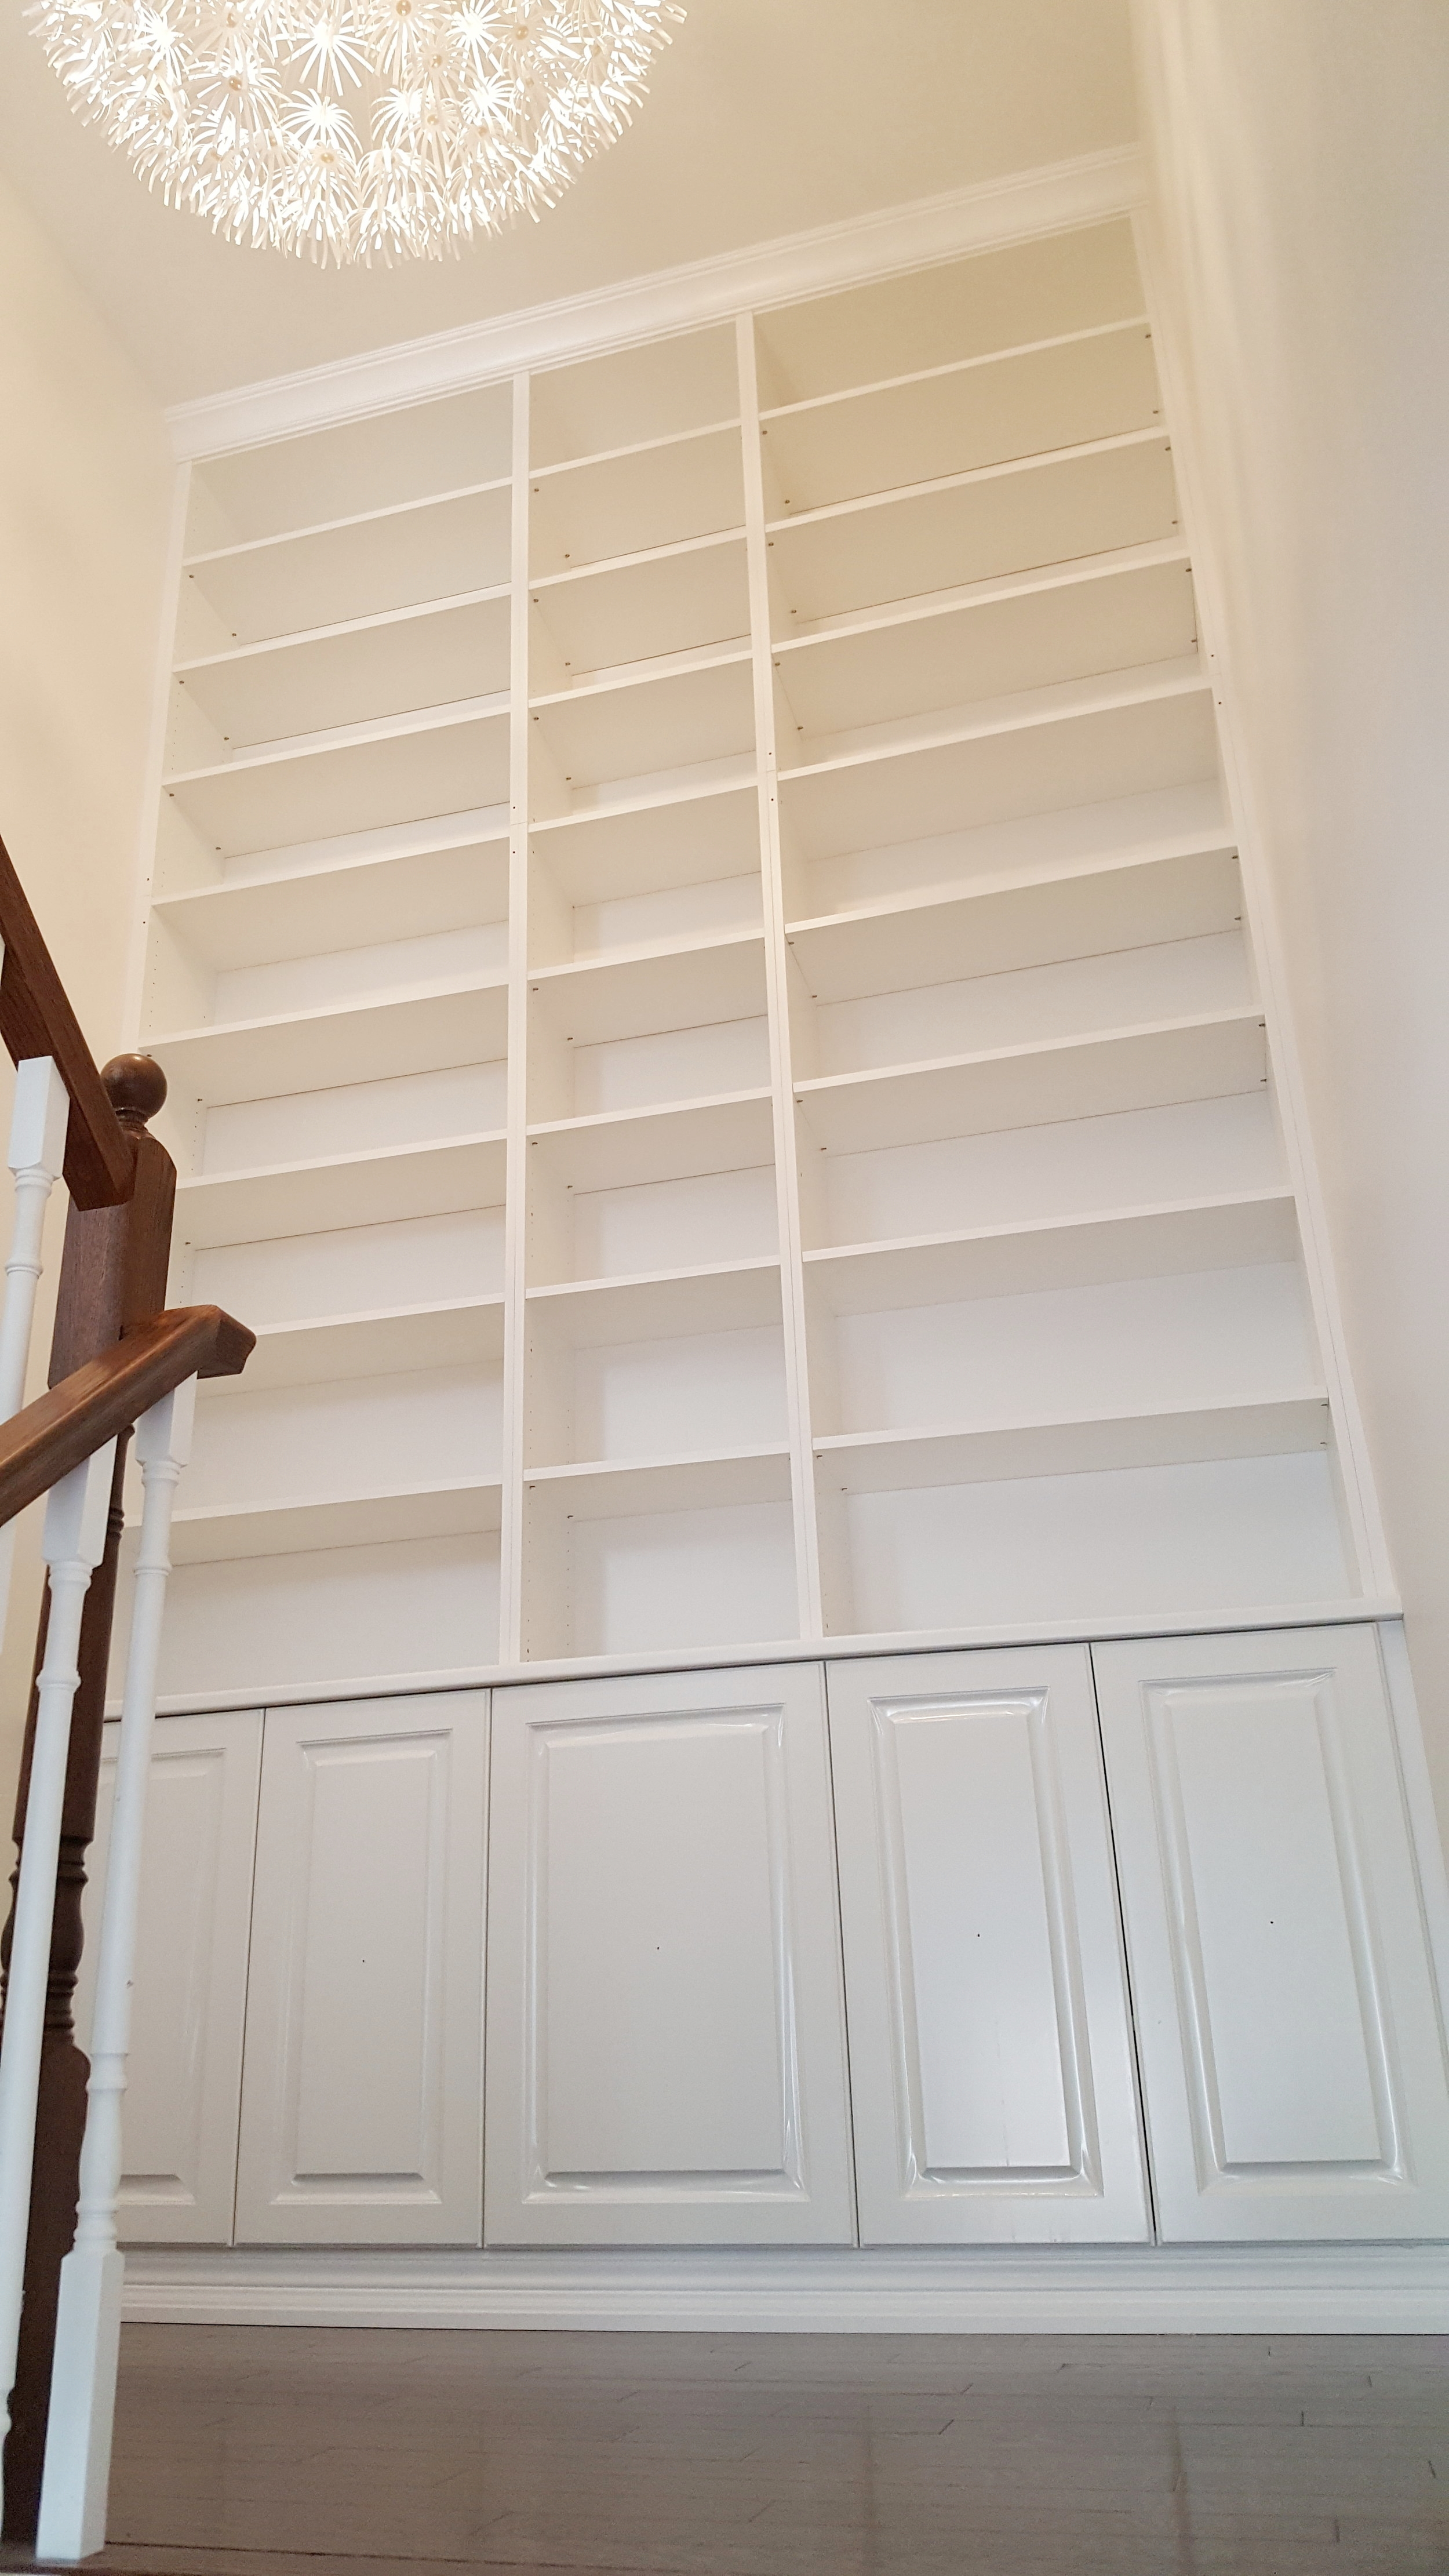 Library wall built from IKEa Billy Bookcases, Ikea Counter and home depot in-stock upper kitchen cabinets